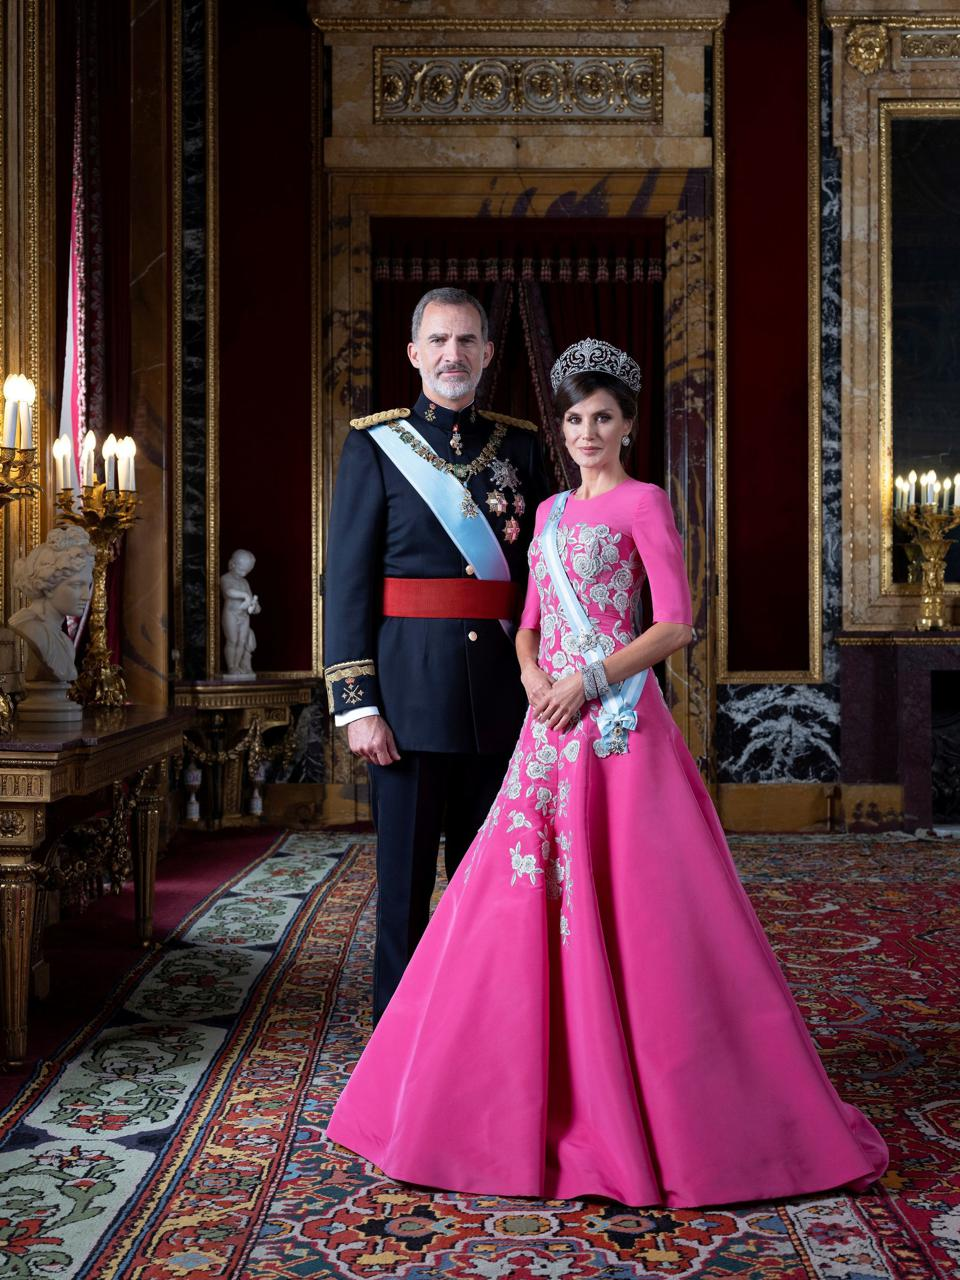 King Juan Carlos and Queen Leticia of Spain in new photo